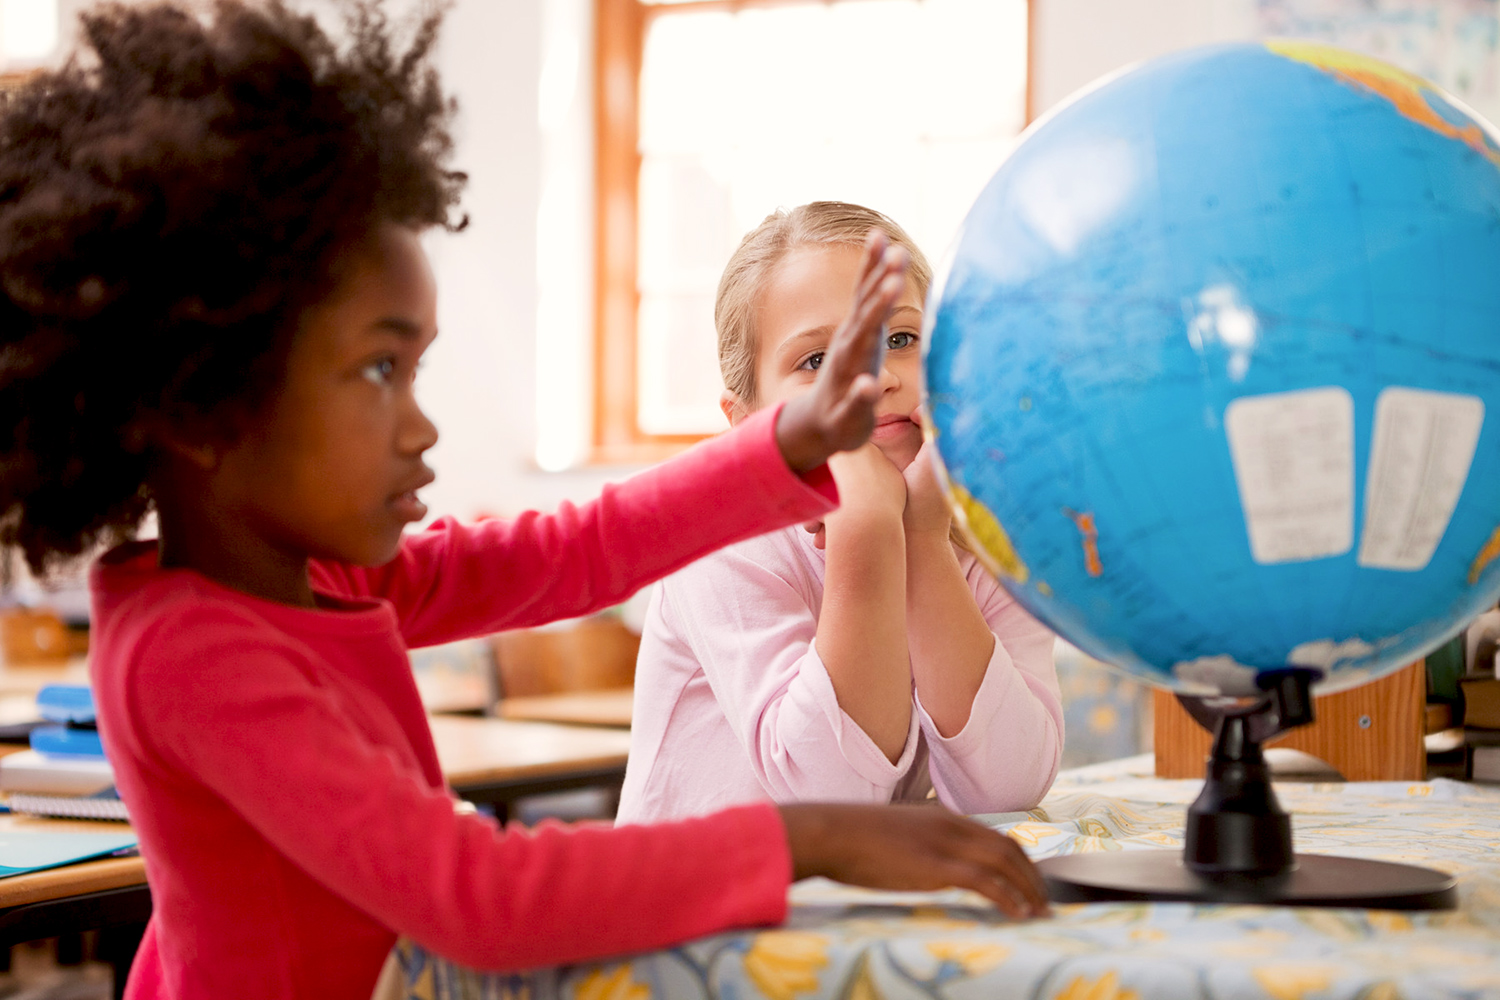 UVA researchers have found some evidence that some preschoolers fare better with teachers who match their race.